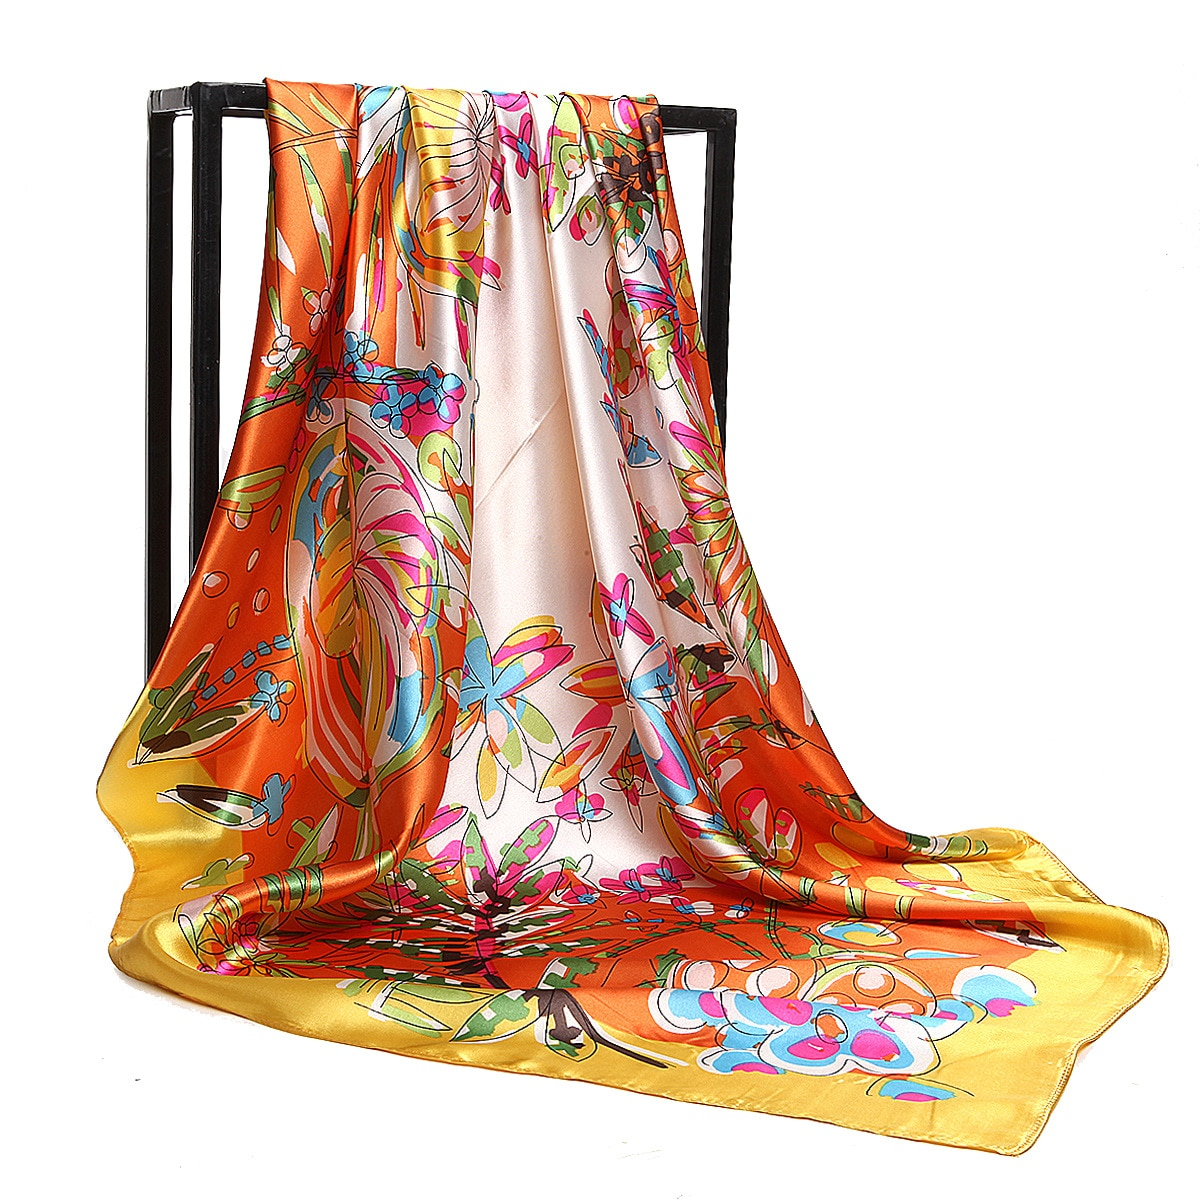 2021 Women's Silk Shawl New Virgin Forest Butterfly Flower Printing Female Sex Big Square Scarf Gifts for Ladies